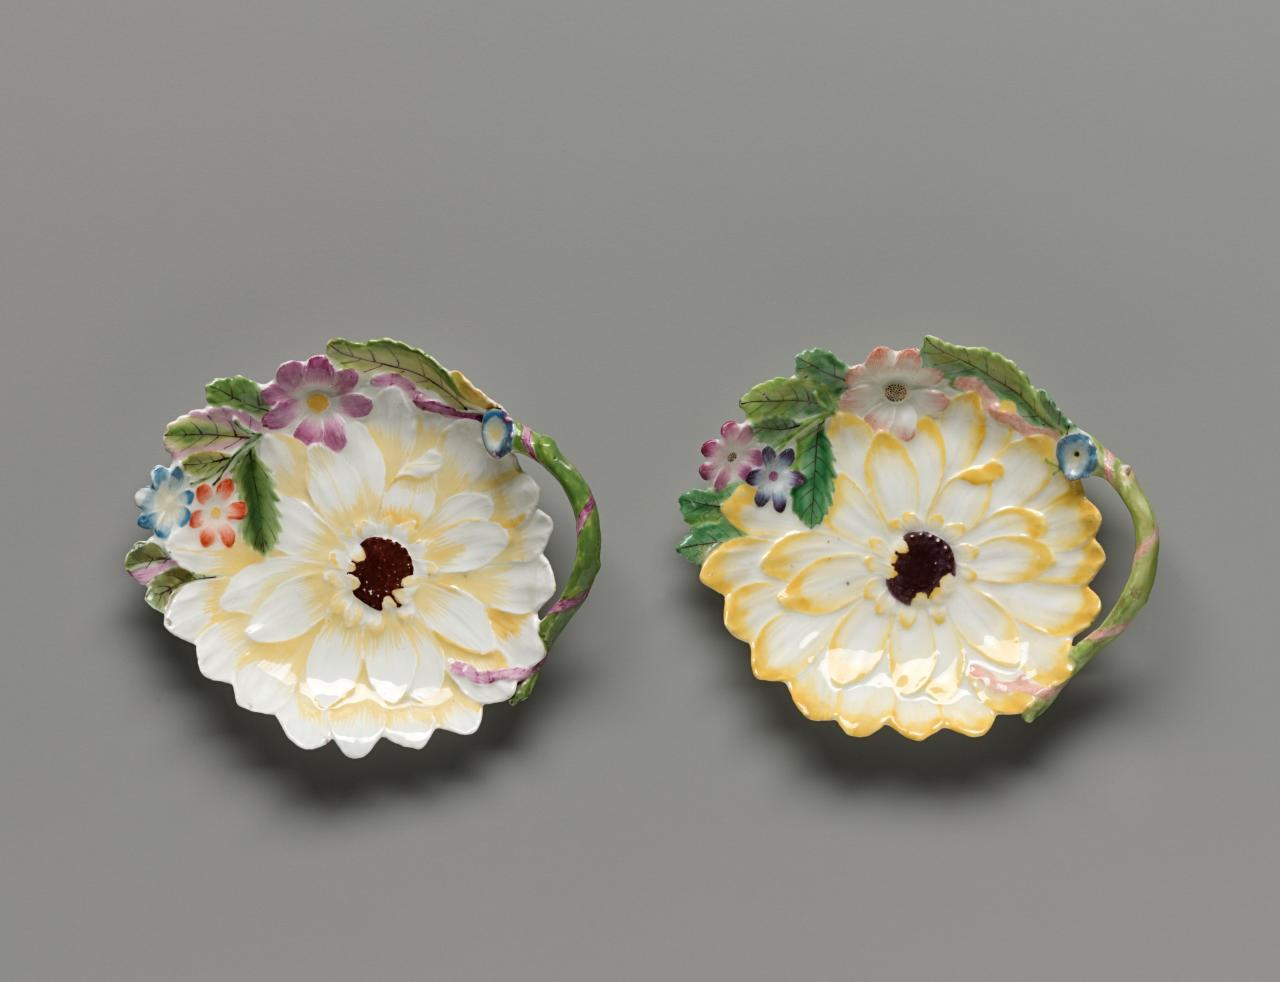 Pair of sunflower plates